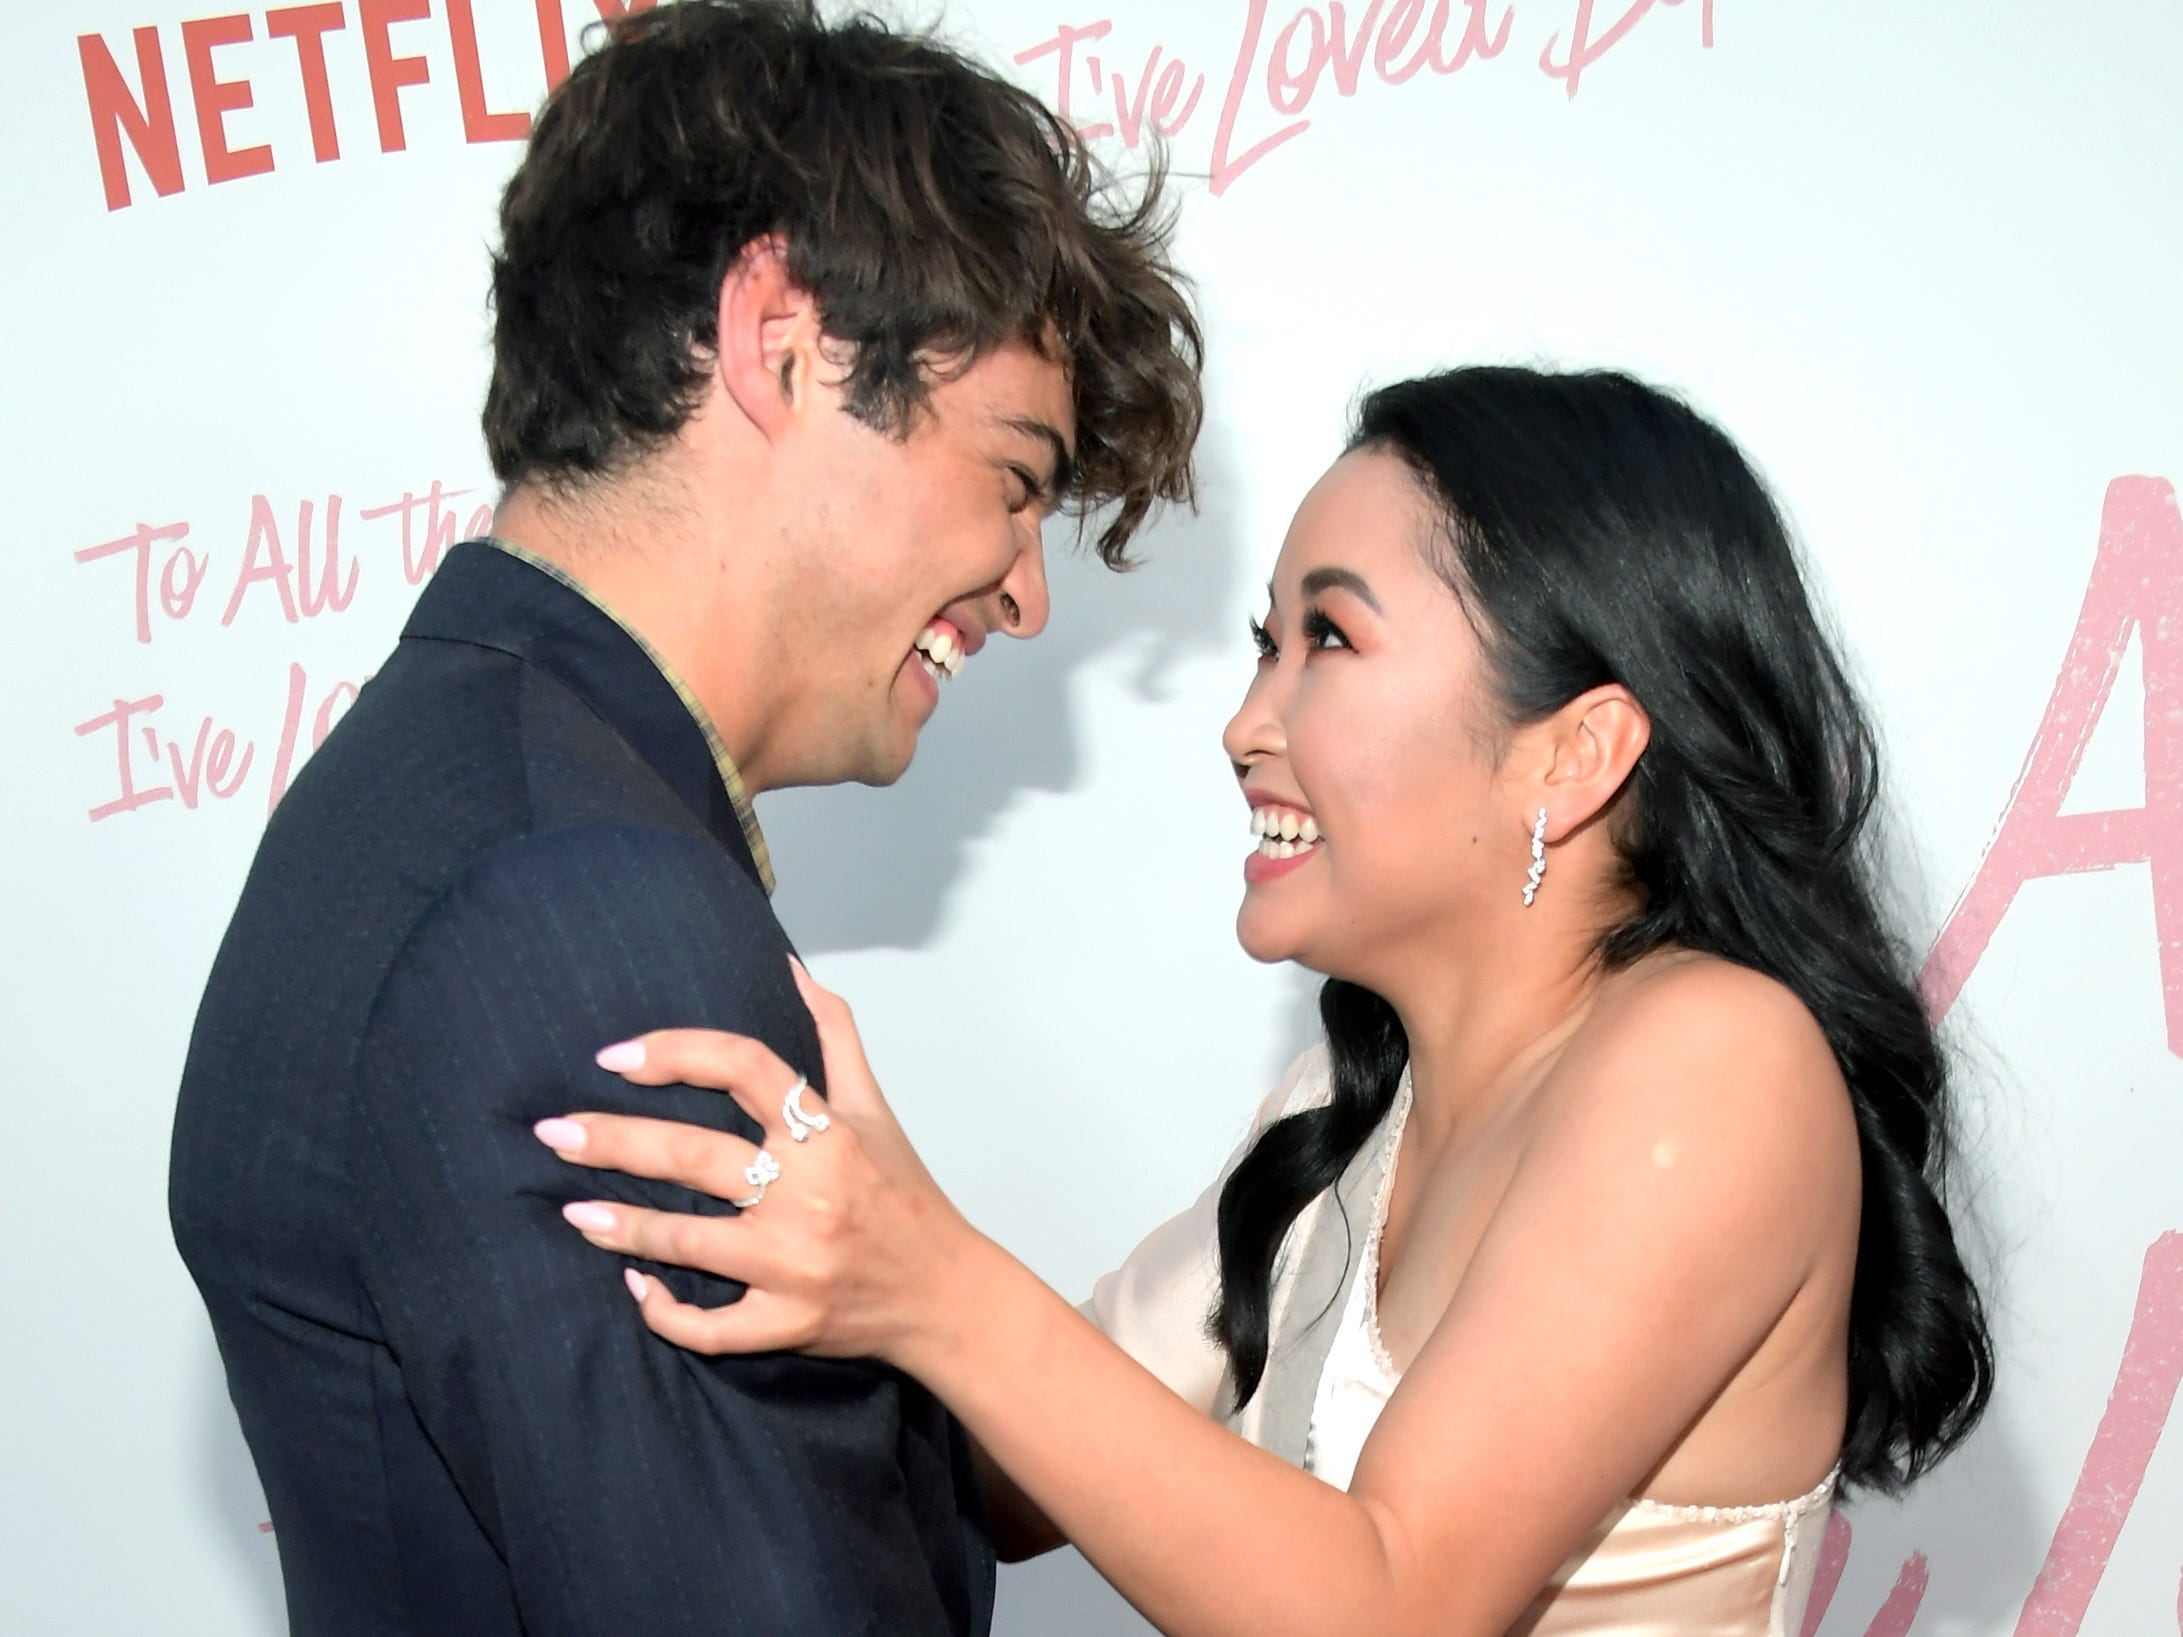 """August 16:  Noah Centineo and  Lana Condor smile together at the LA premiere for Netflix's """"To All the Boys I've Loved Before."""""""